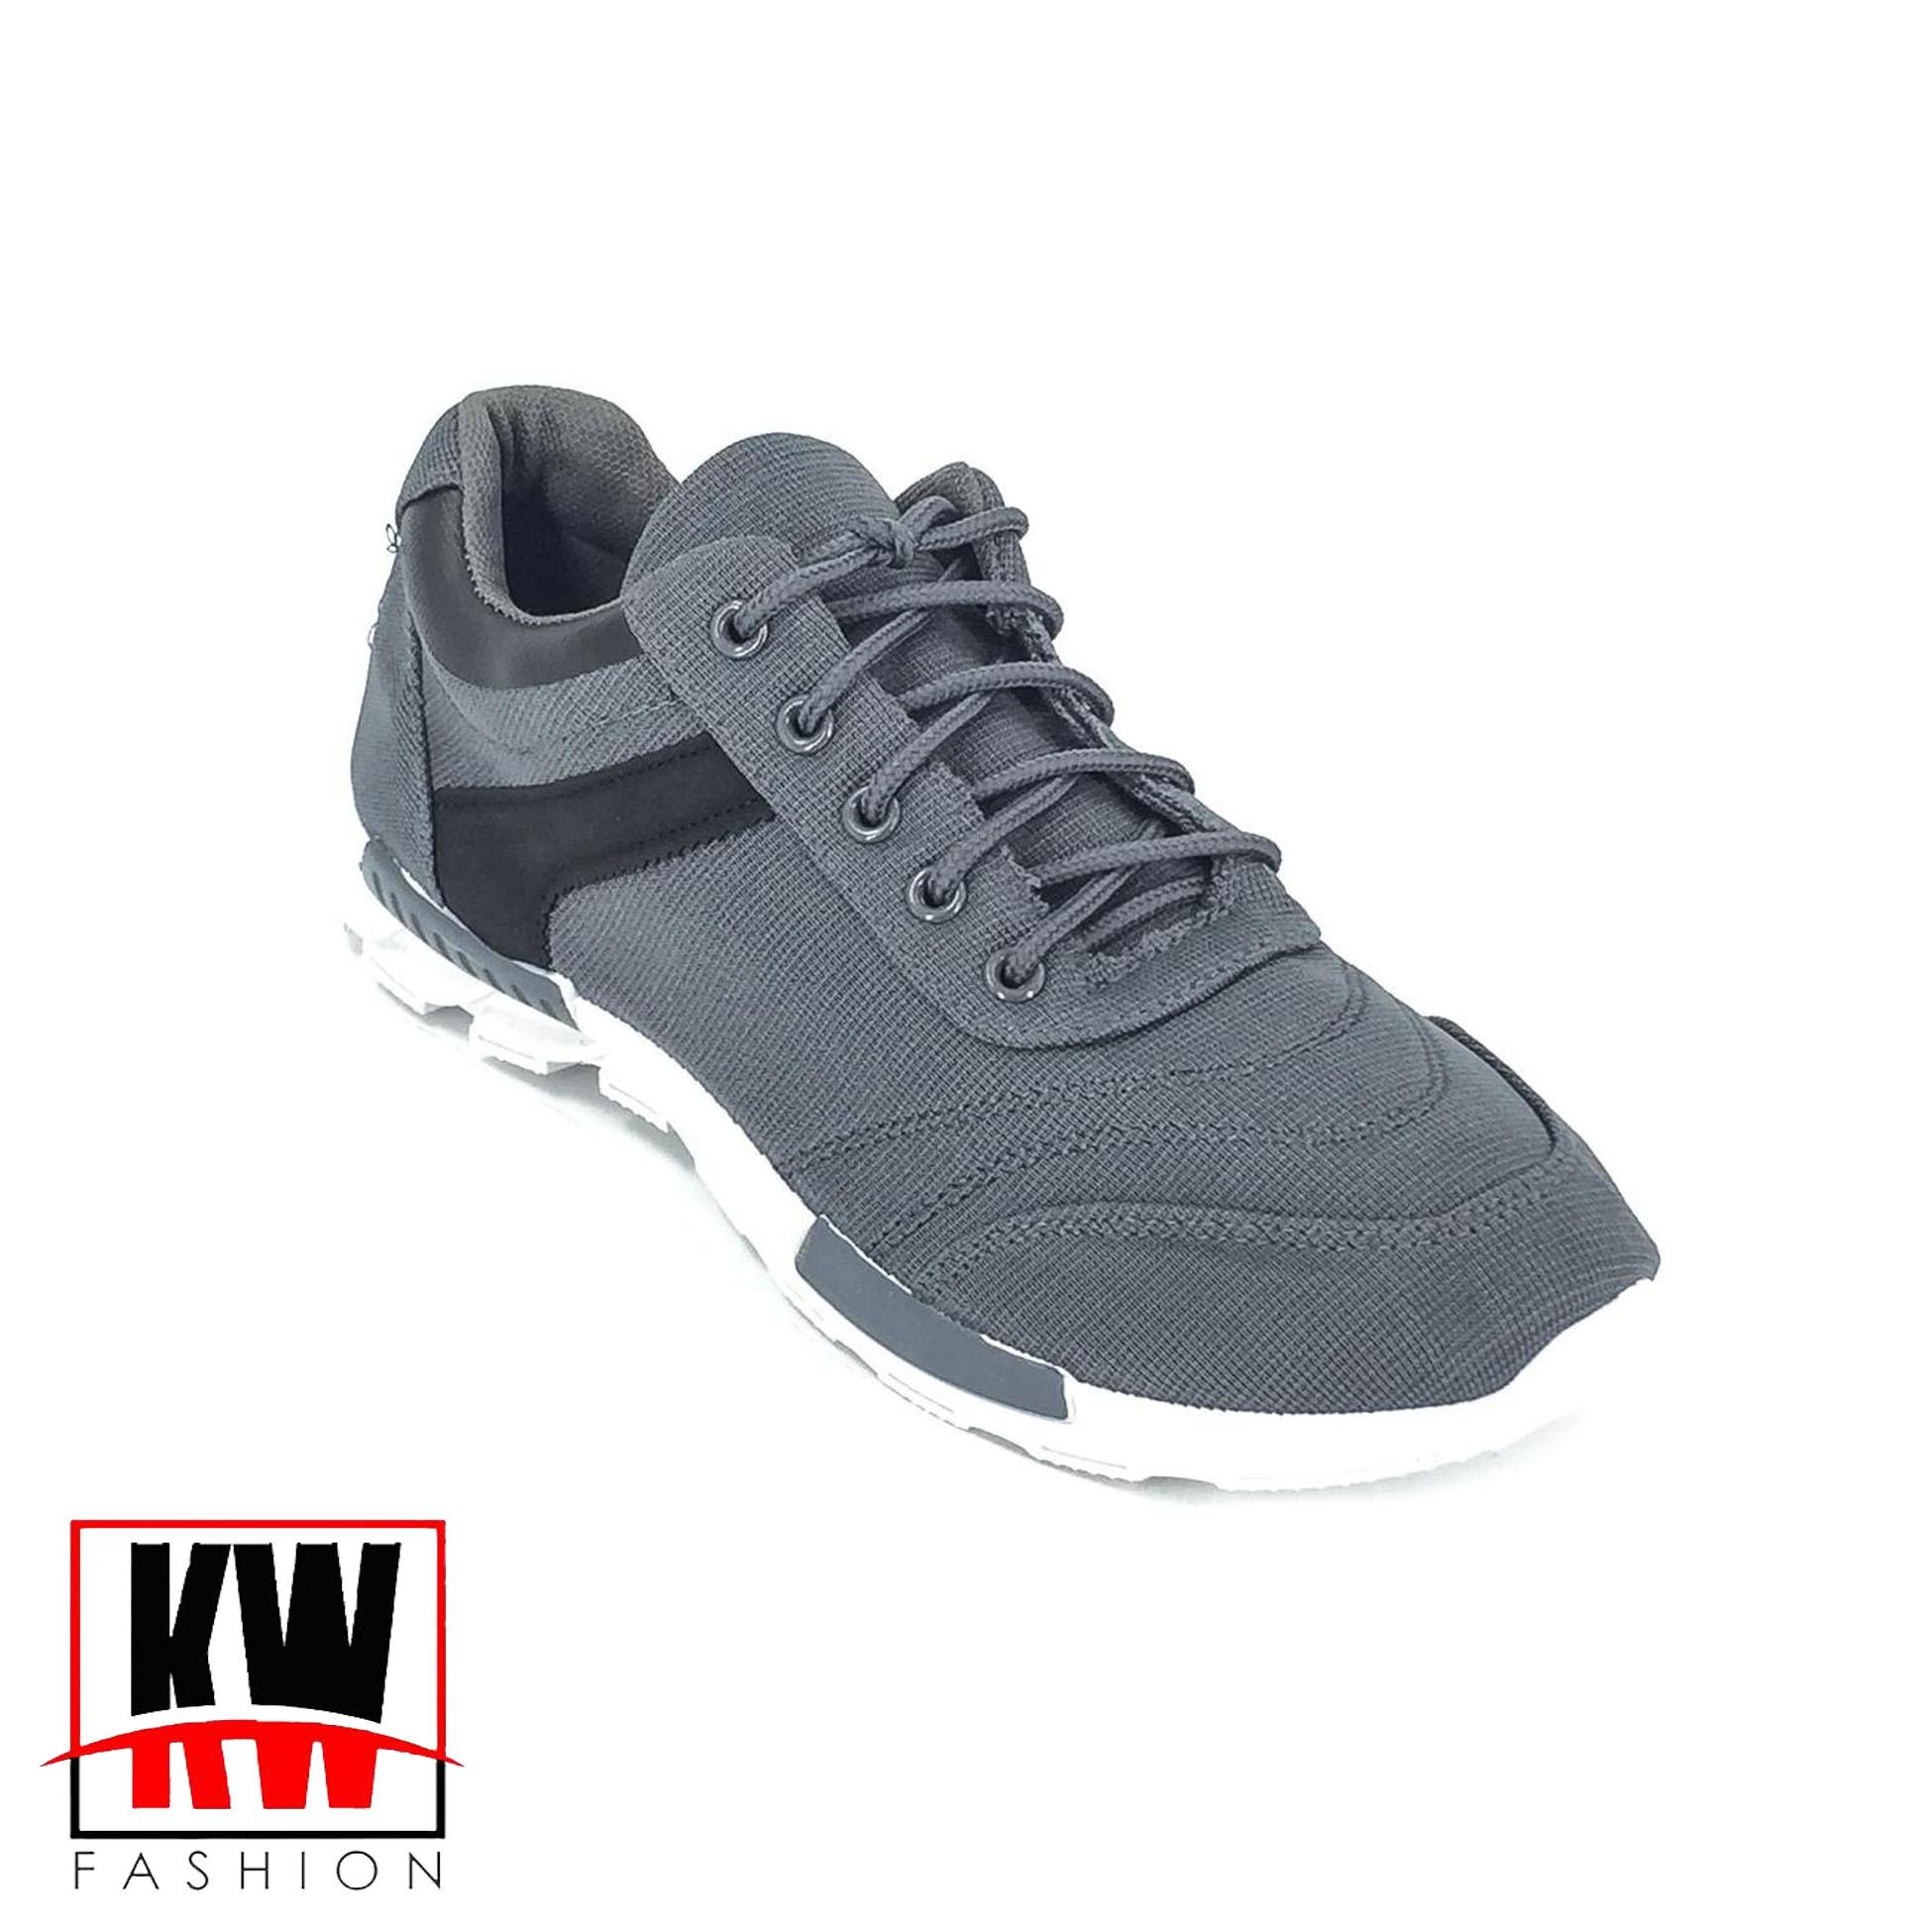 be429bb91b6b Shoes for Men for sale - Mens Fashion Shoes online brands